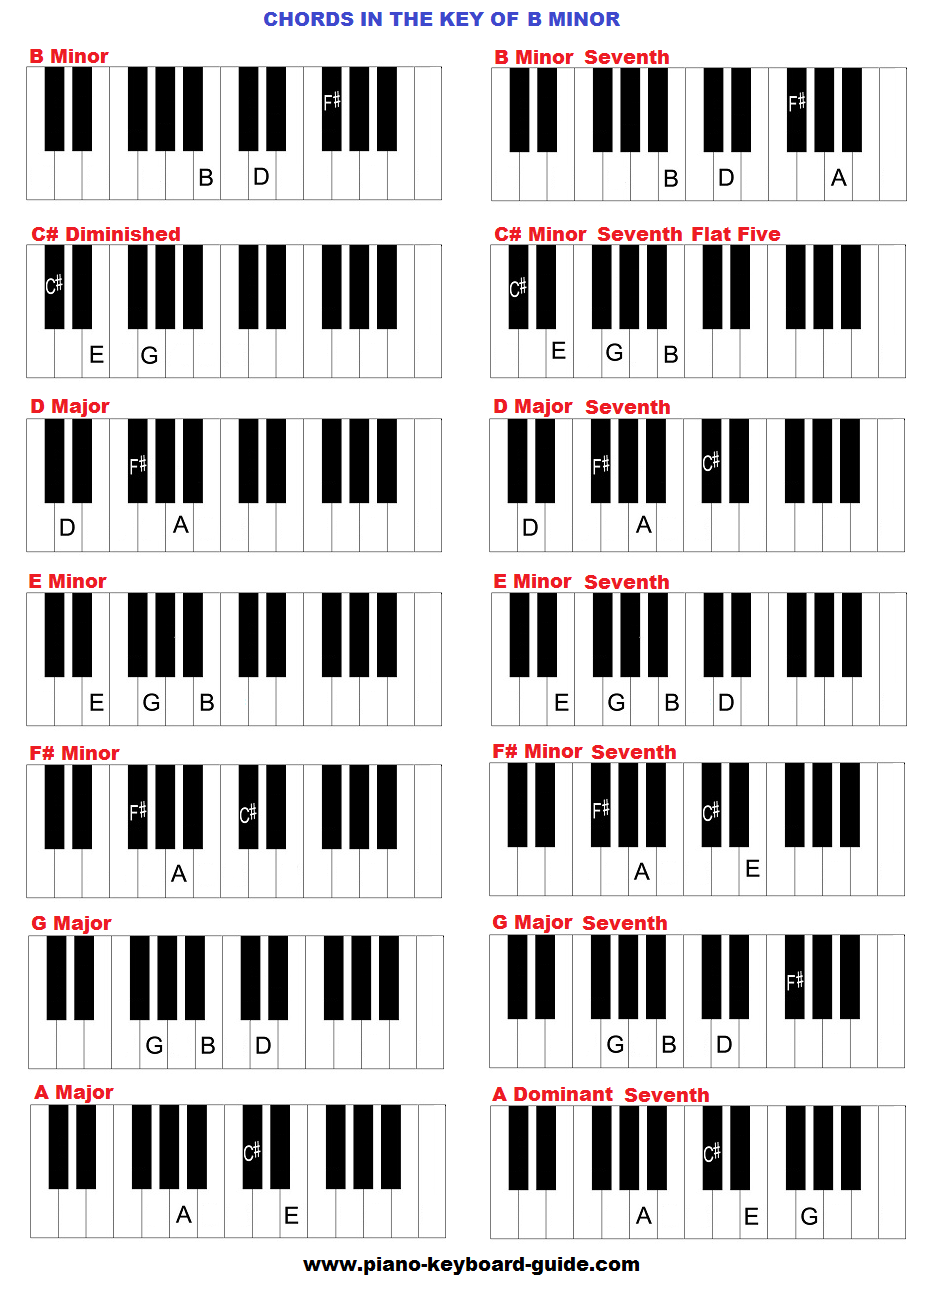 Chords in the key of B minor (Bmin)